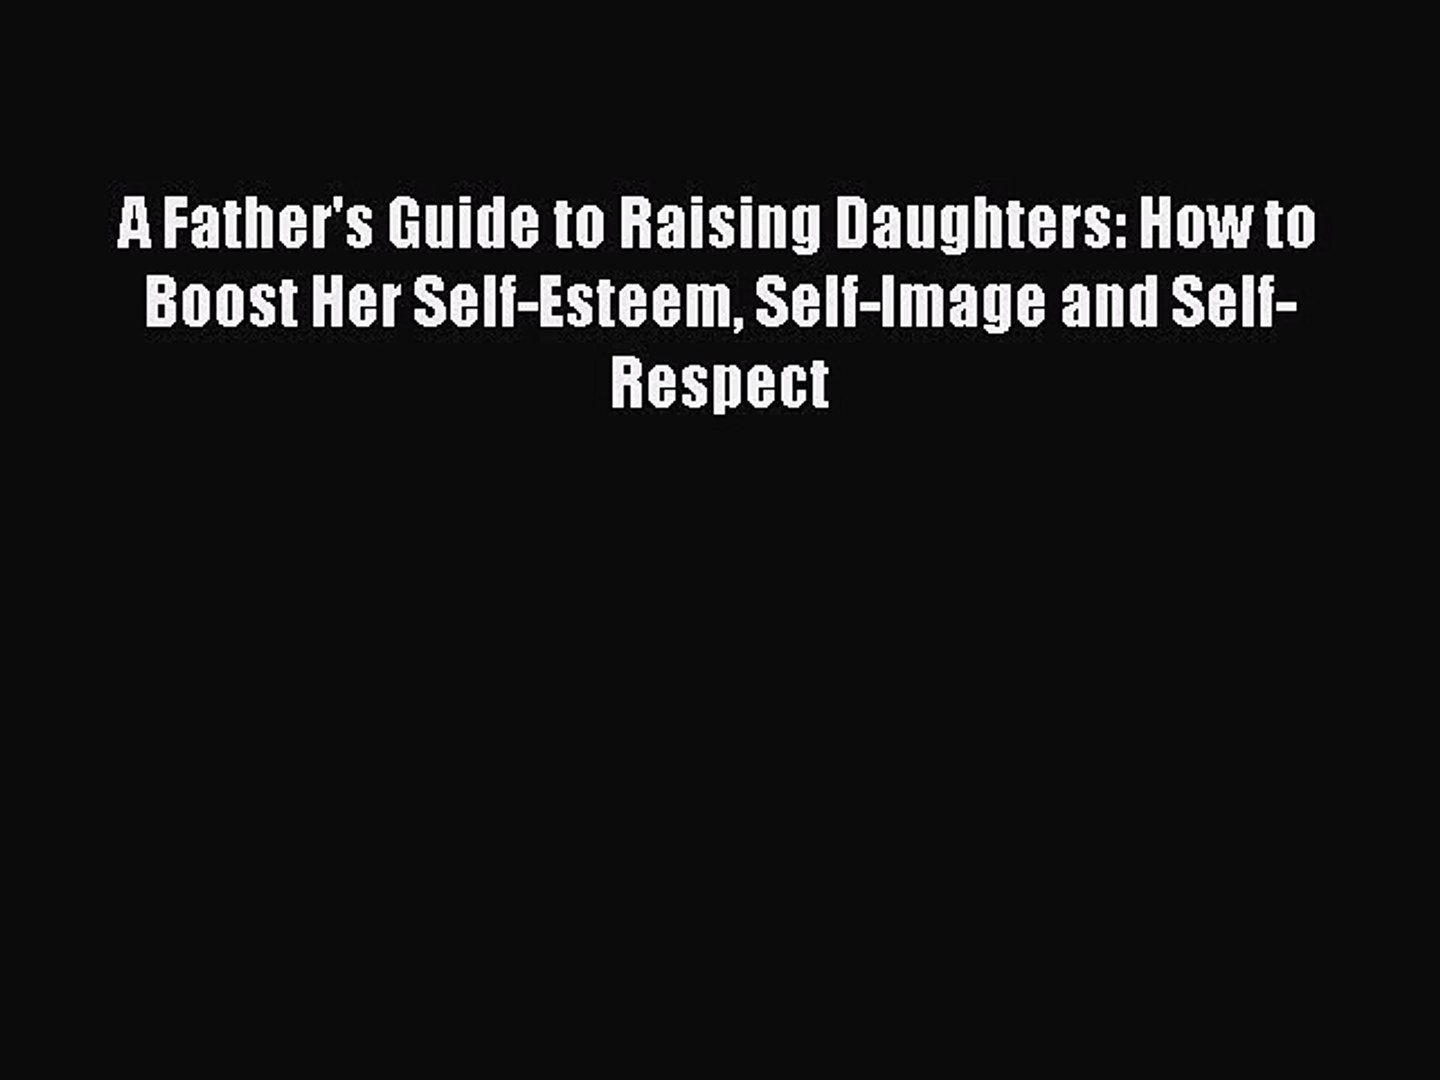 Download A Father's Guide to Raising Daughters: How to Boost Her Self-Esteem Self-Image and